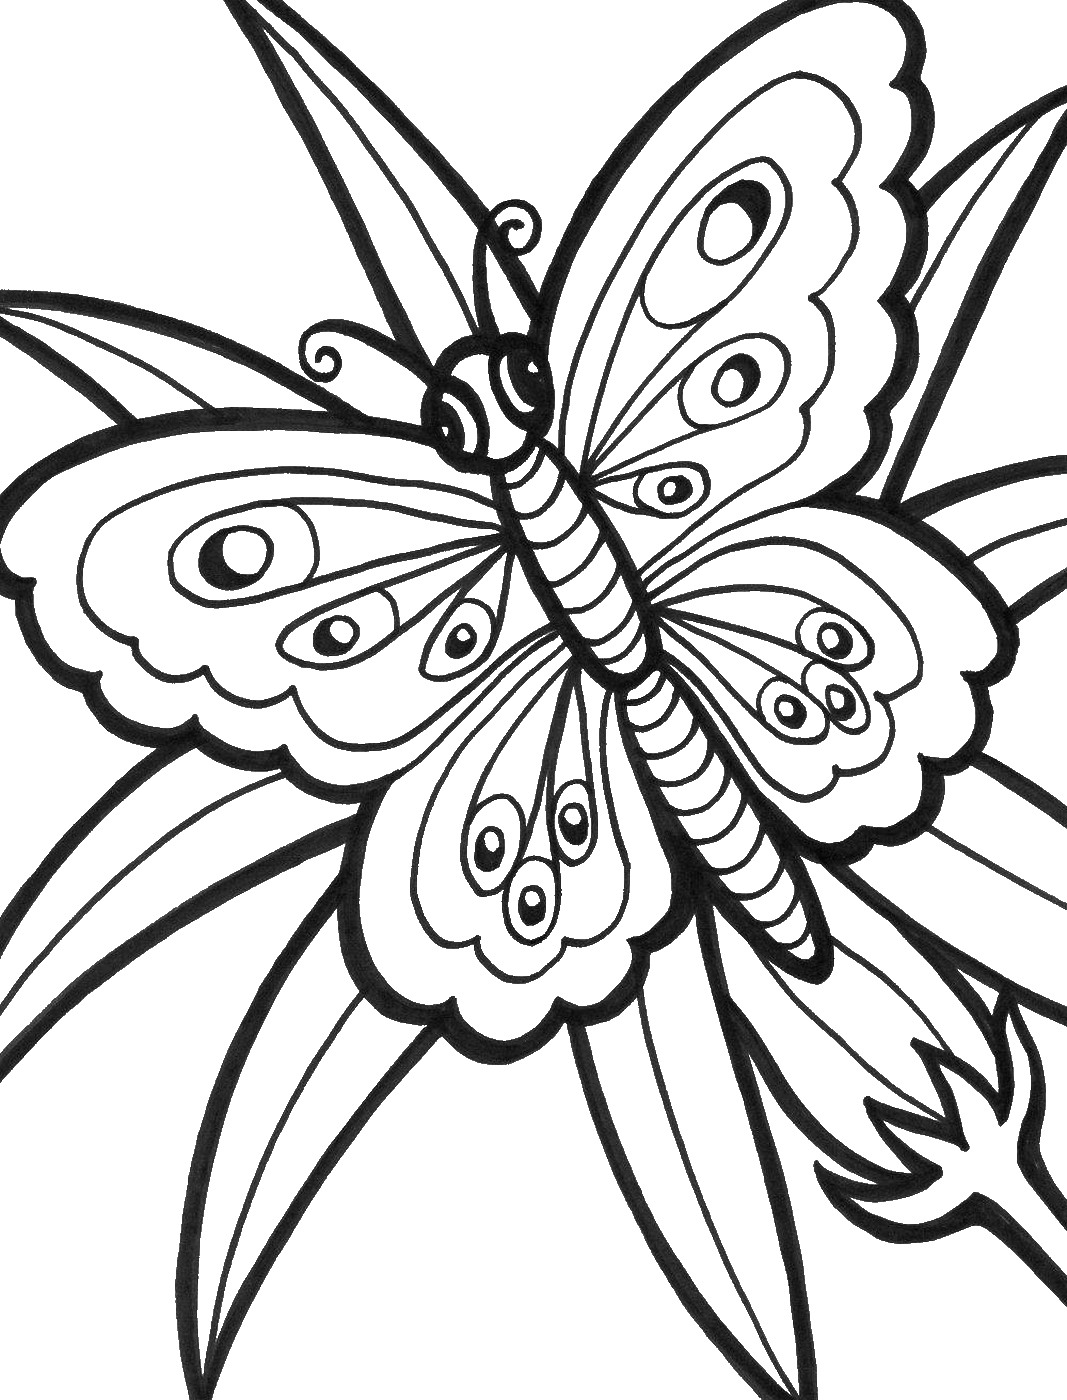 butterfly coloring pages free printable coloring pages butterfly free printable coloring pages butterfly free coloring printable pages